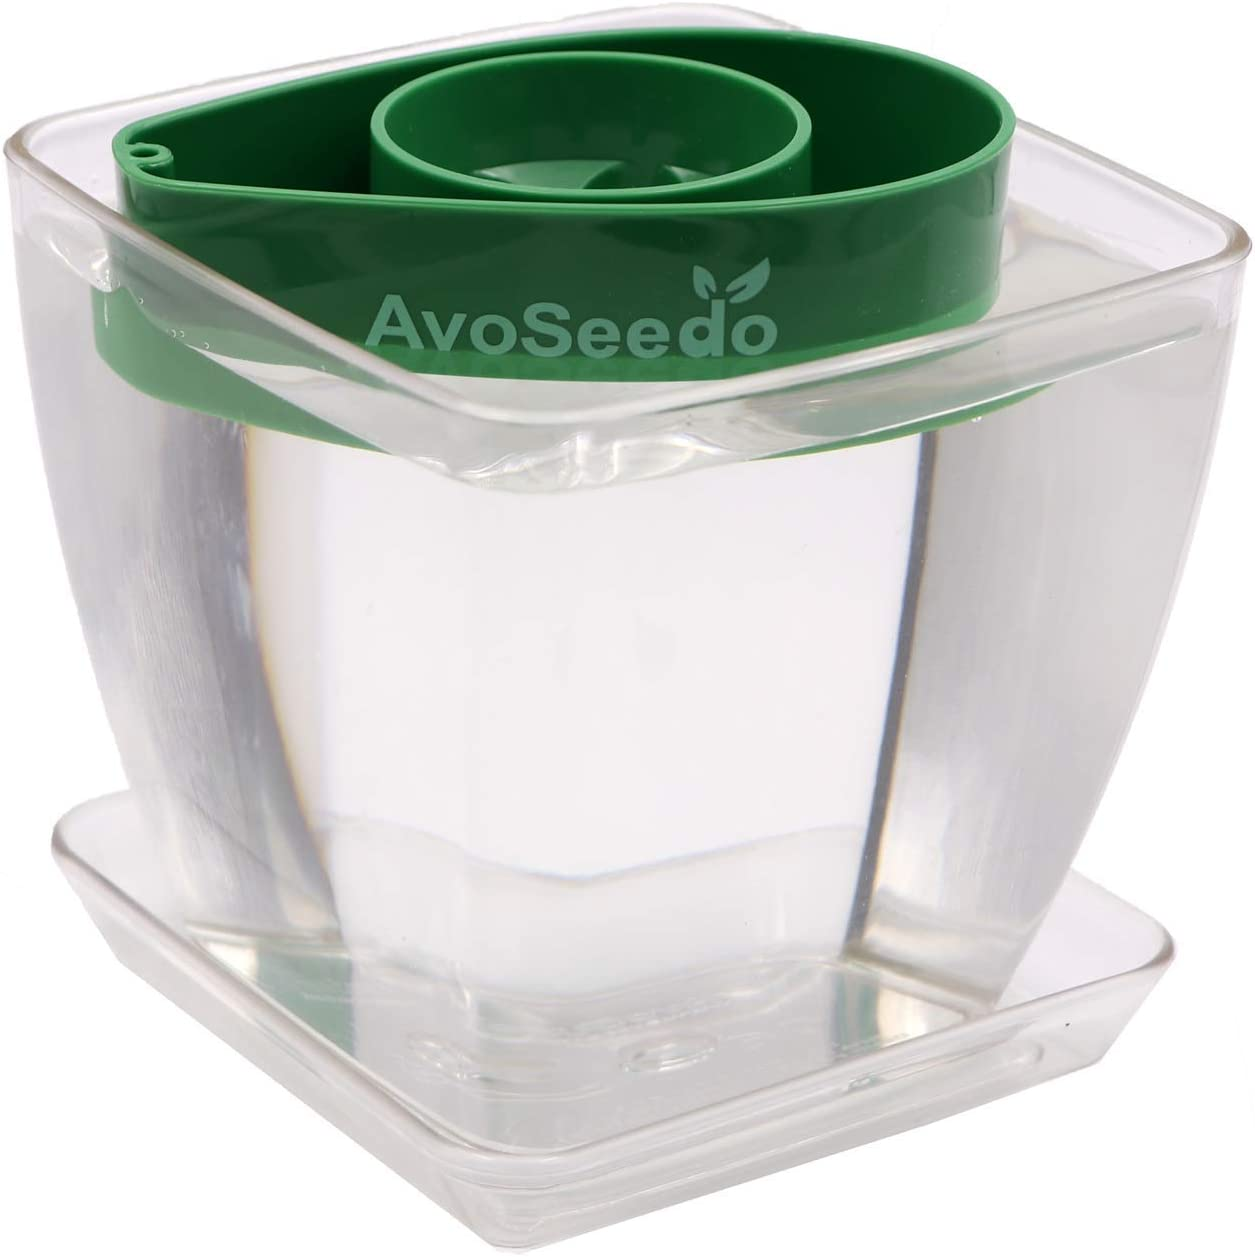 AvoSeedo Bowl Set Grow Your Own Avocado Tree, Evergreen, Perfect Avocado Tree Growing Kit for Every Avocado Lover with Plan Pot Kit-Green Transparent